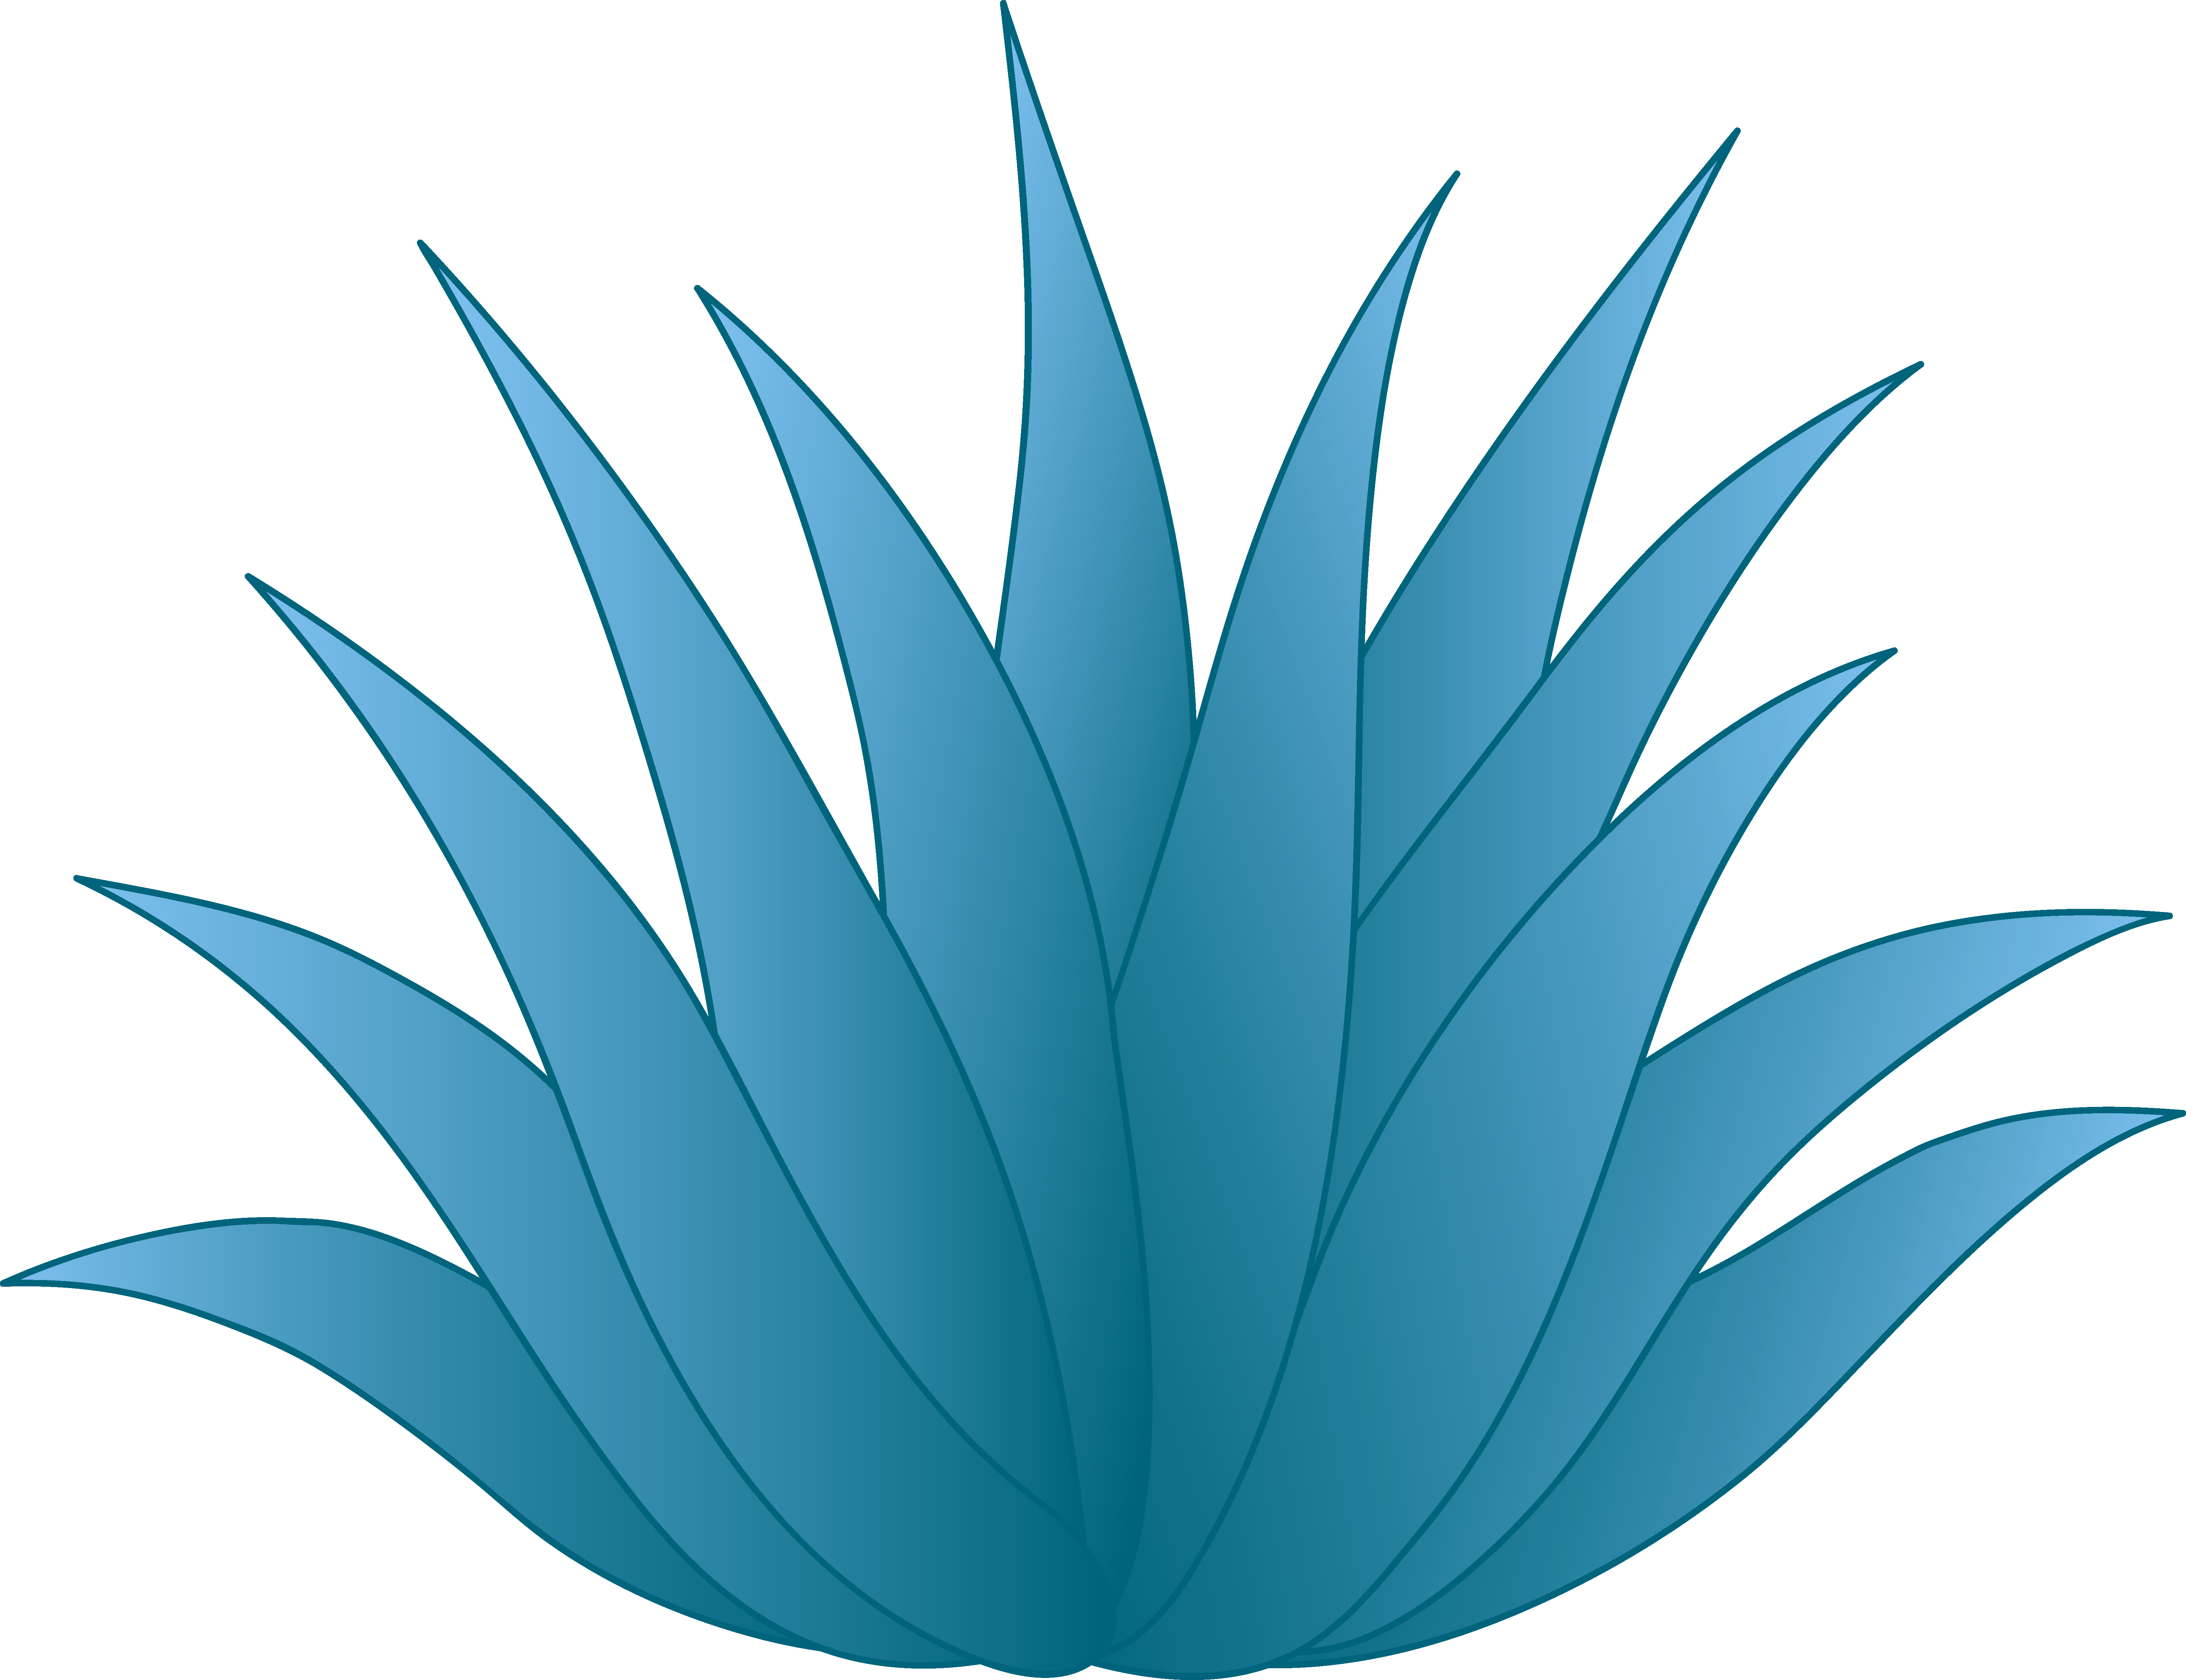 Agave clipart #2, Download drawings